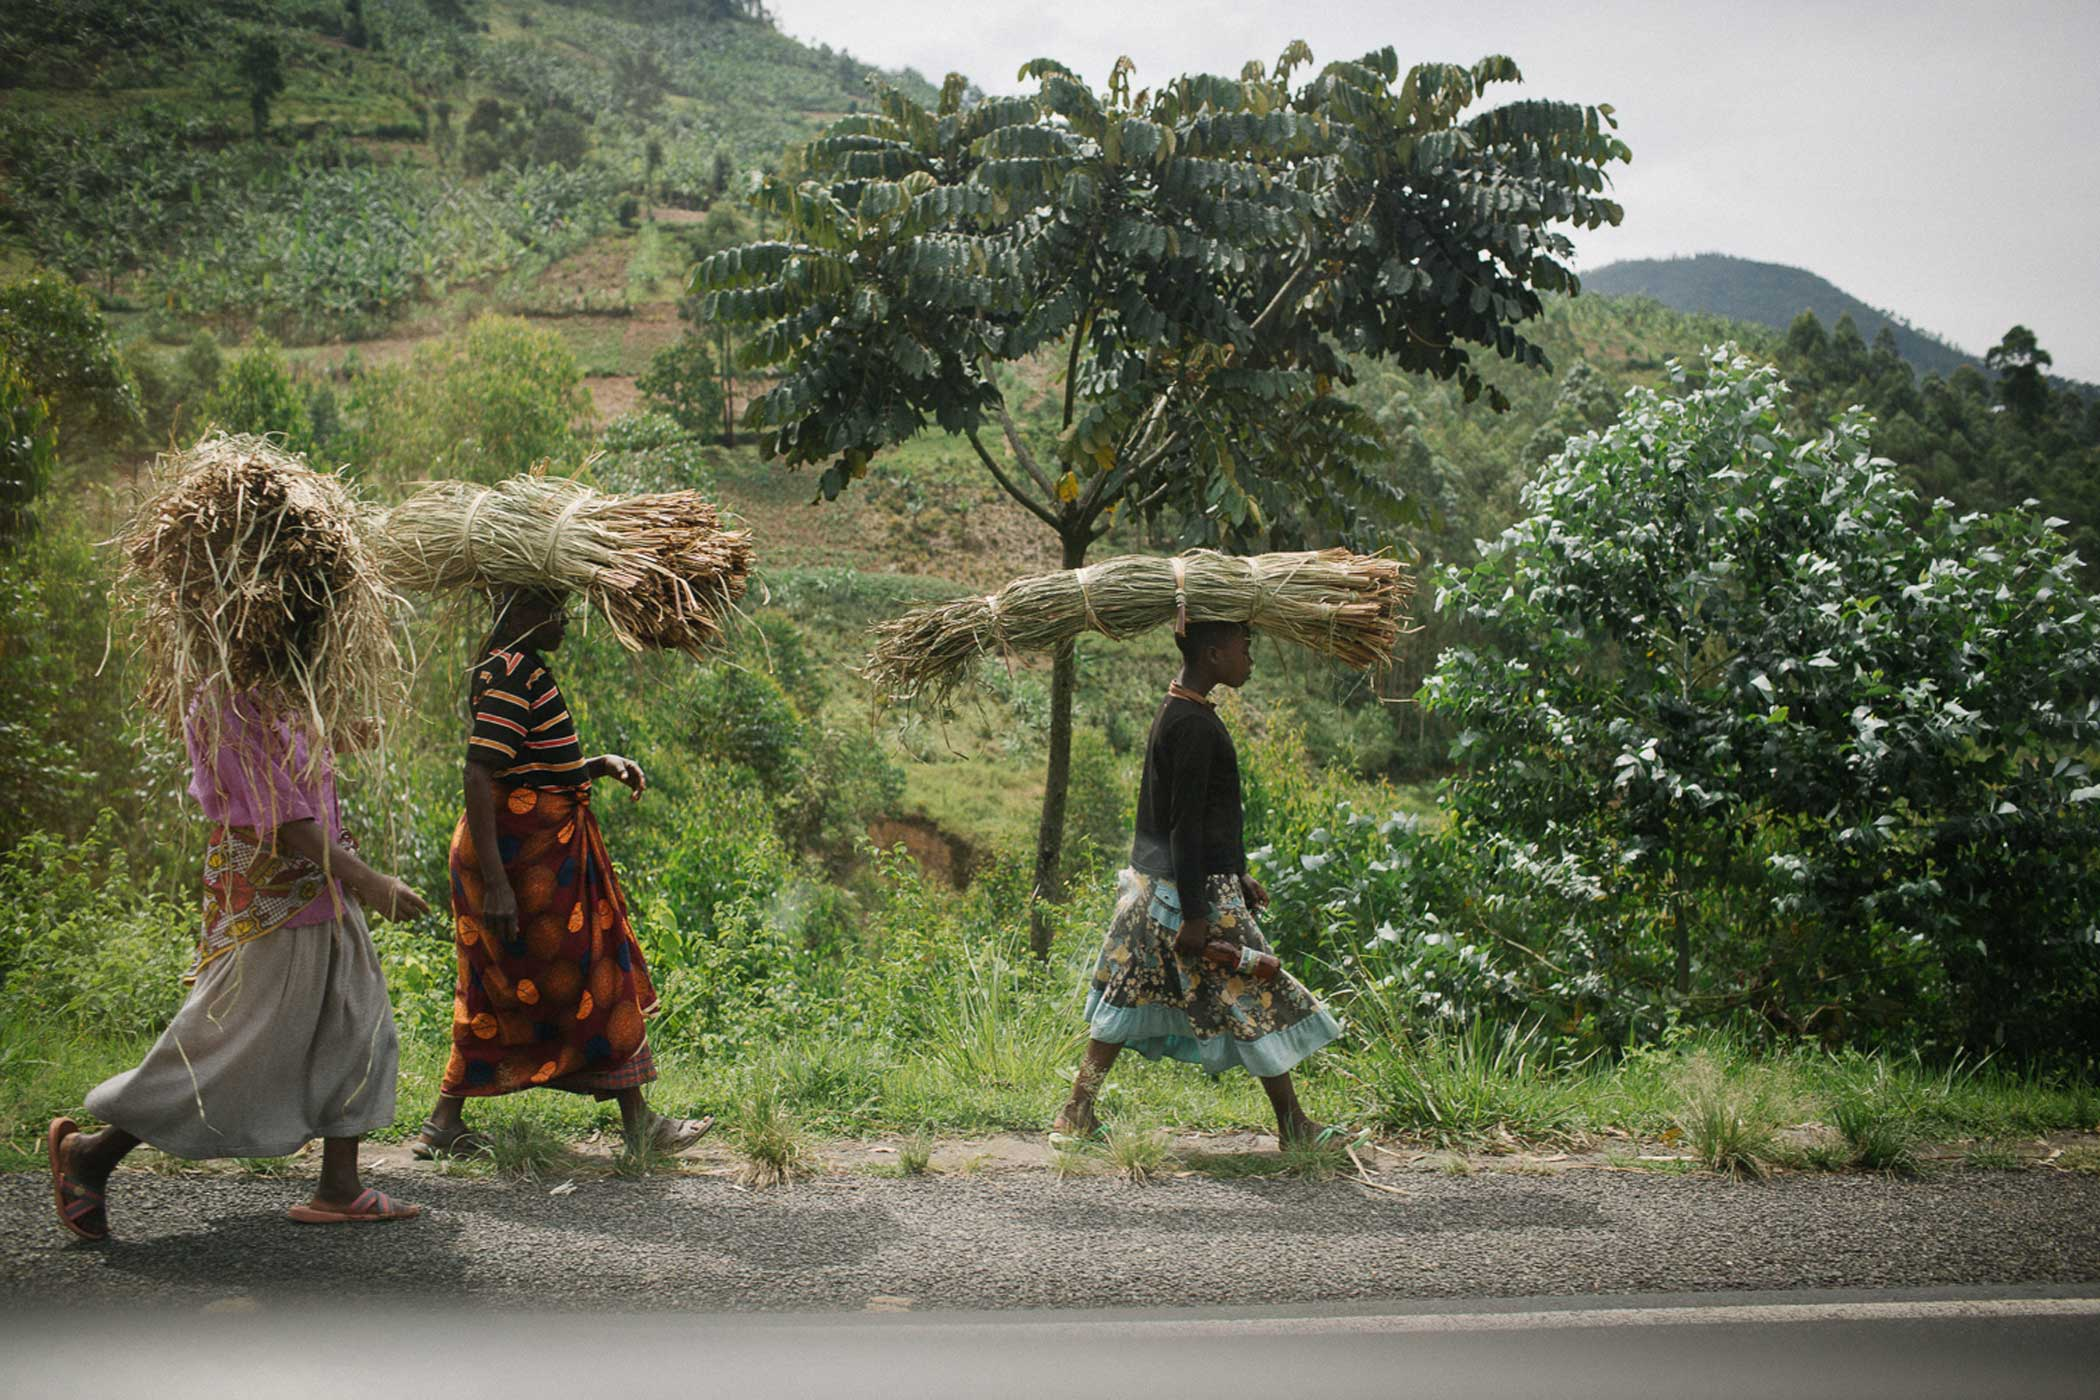 Young women transport corn husks in the outskirts of Kigali. Rwanda is attempting to turn it's agrarian society into a knowledge-based economy and instilling a sense of national identity and unity in Rwandans.